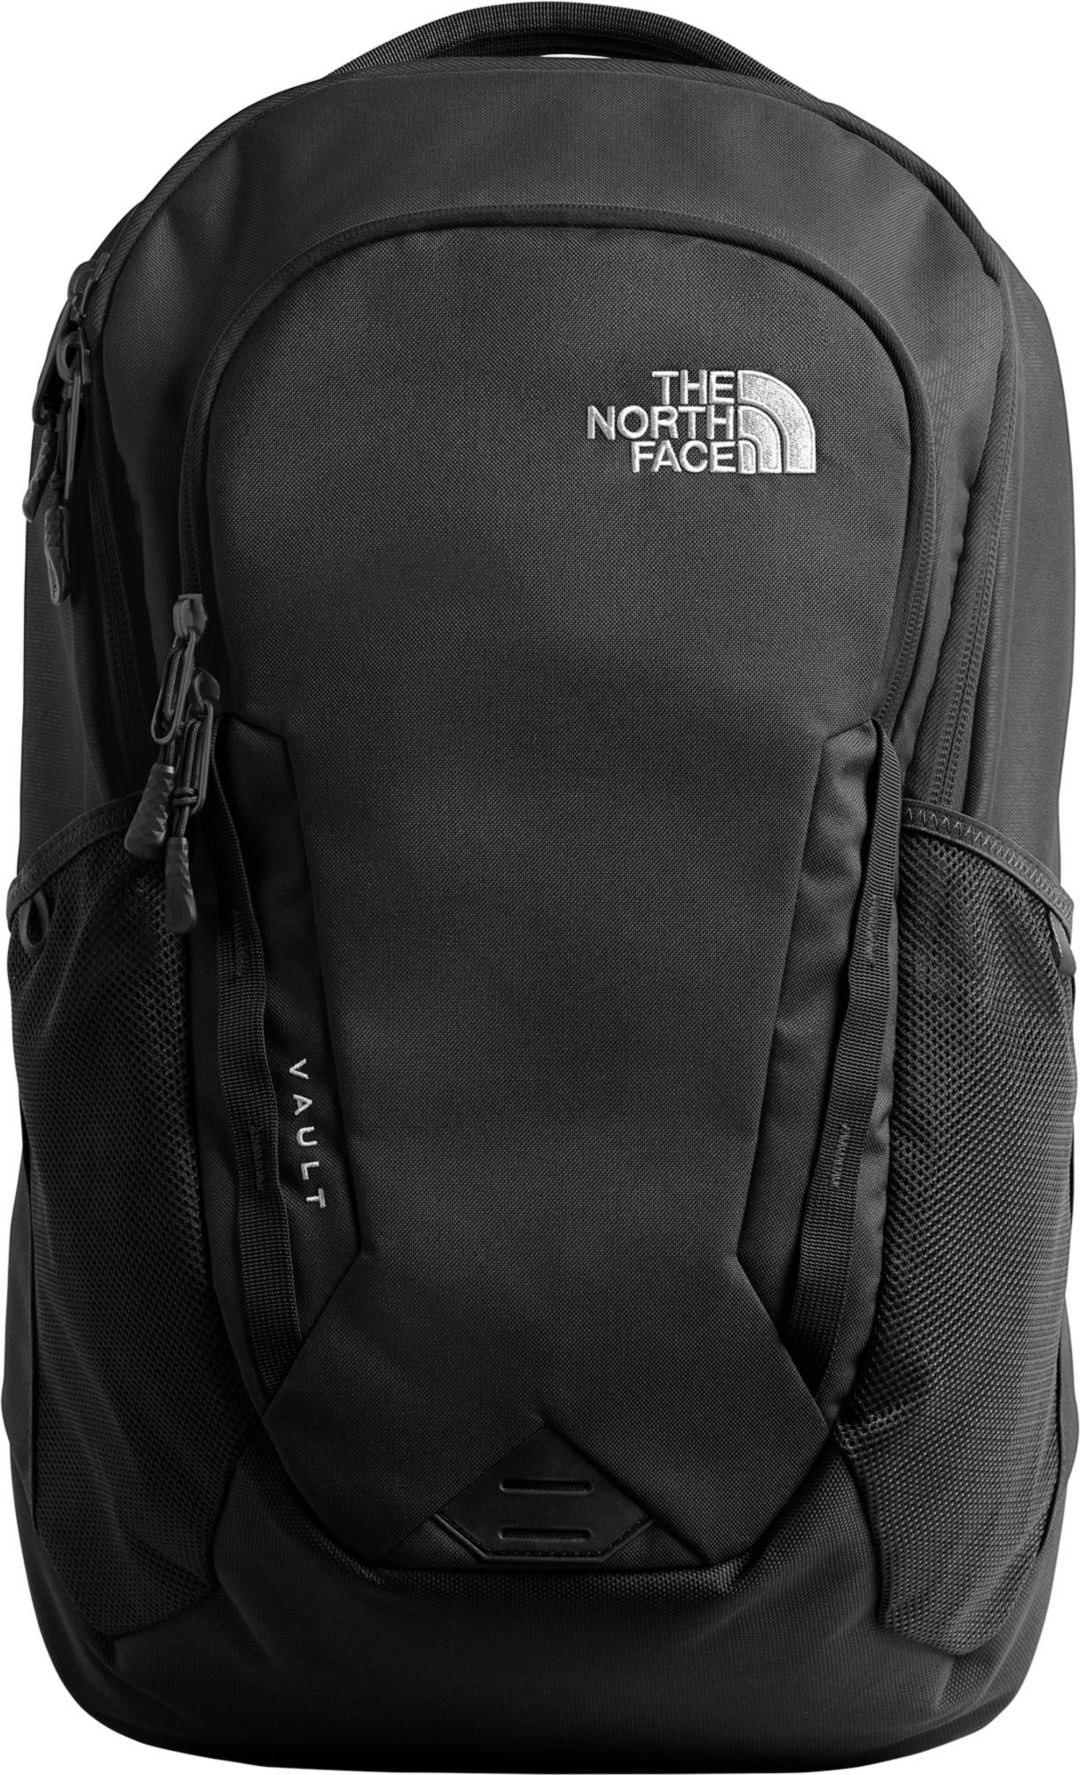 76c358053 The North Face Men's Vault 18 Backpack